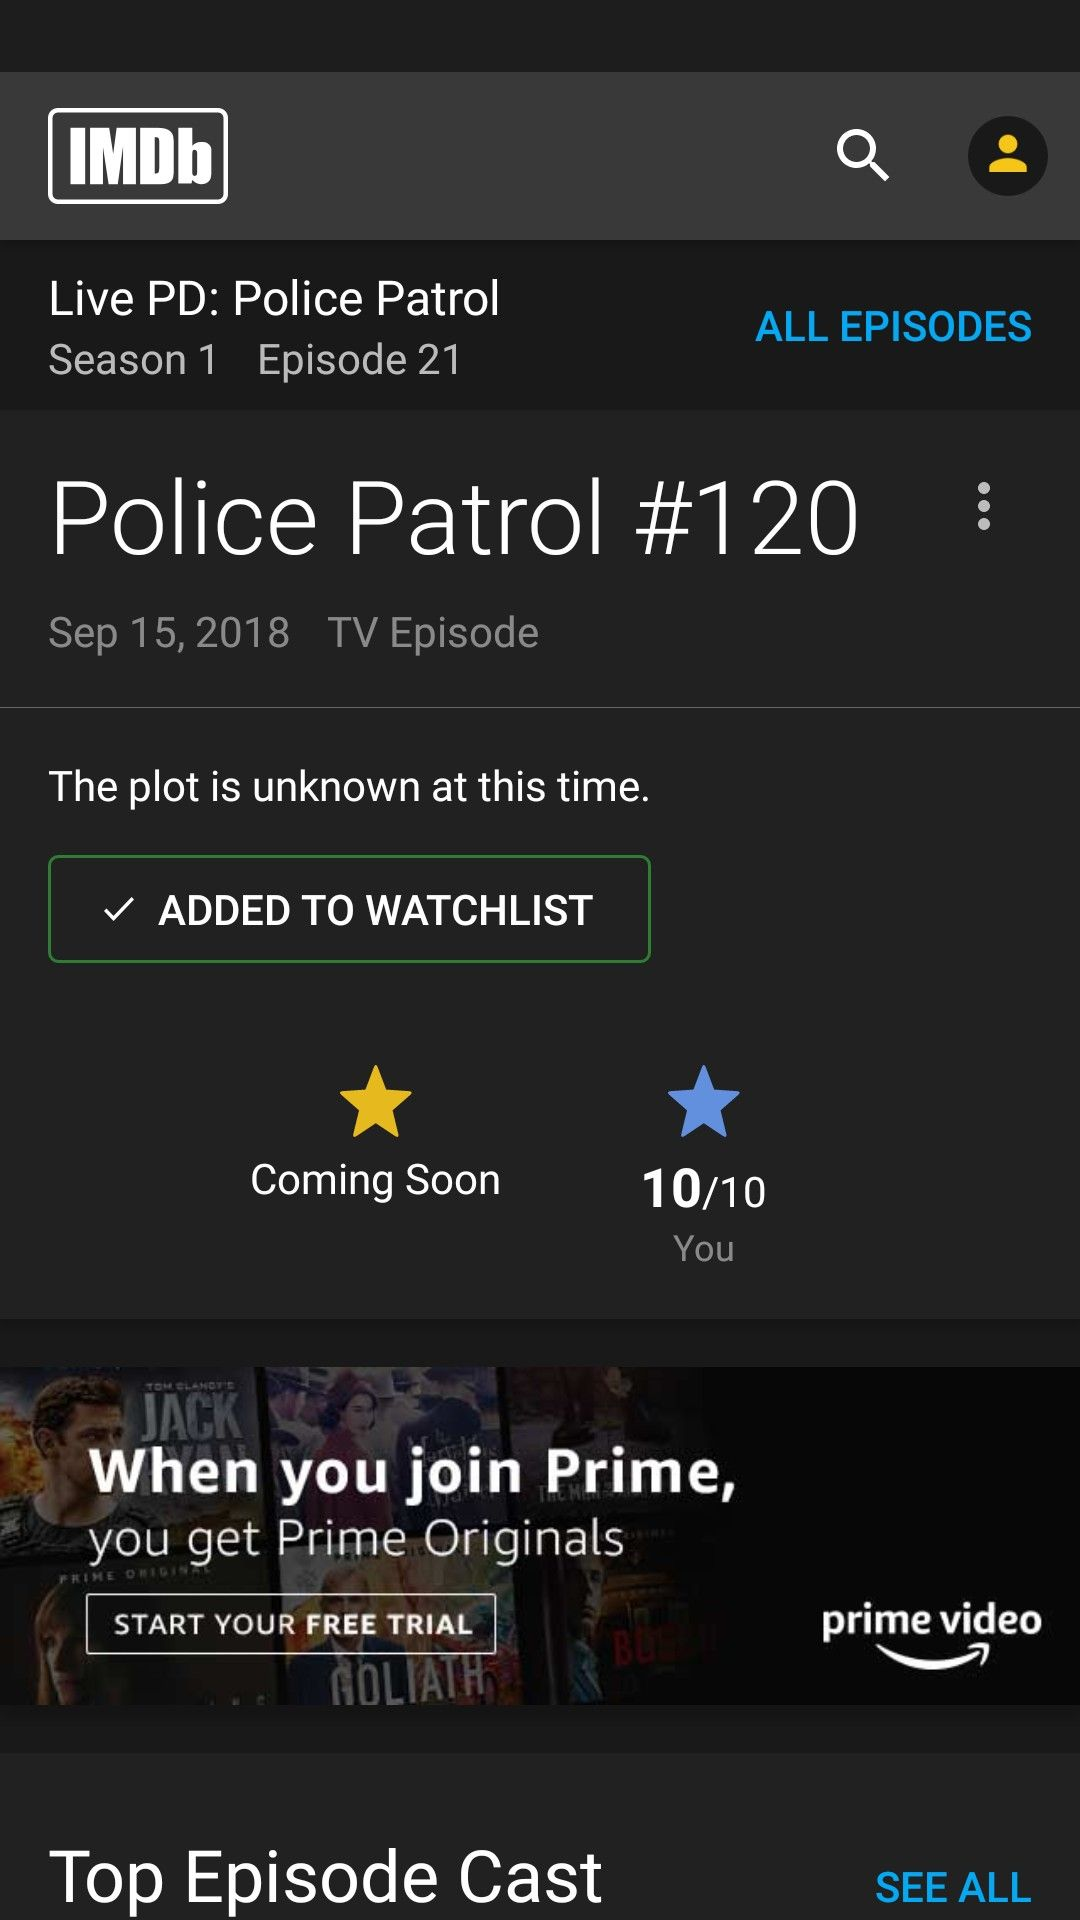 Live Pd S1 E21 Patrol 120 Chris Mastrianni Richland County Sheriff Pursuit Of Stolen Vehicle Involving An Earlier Ho Richland County Shots Fired All Episodes